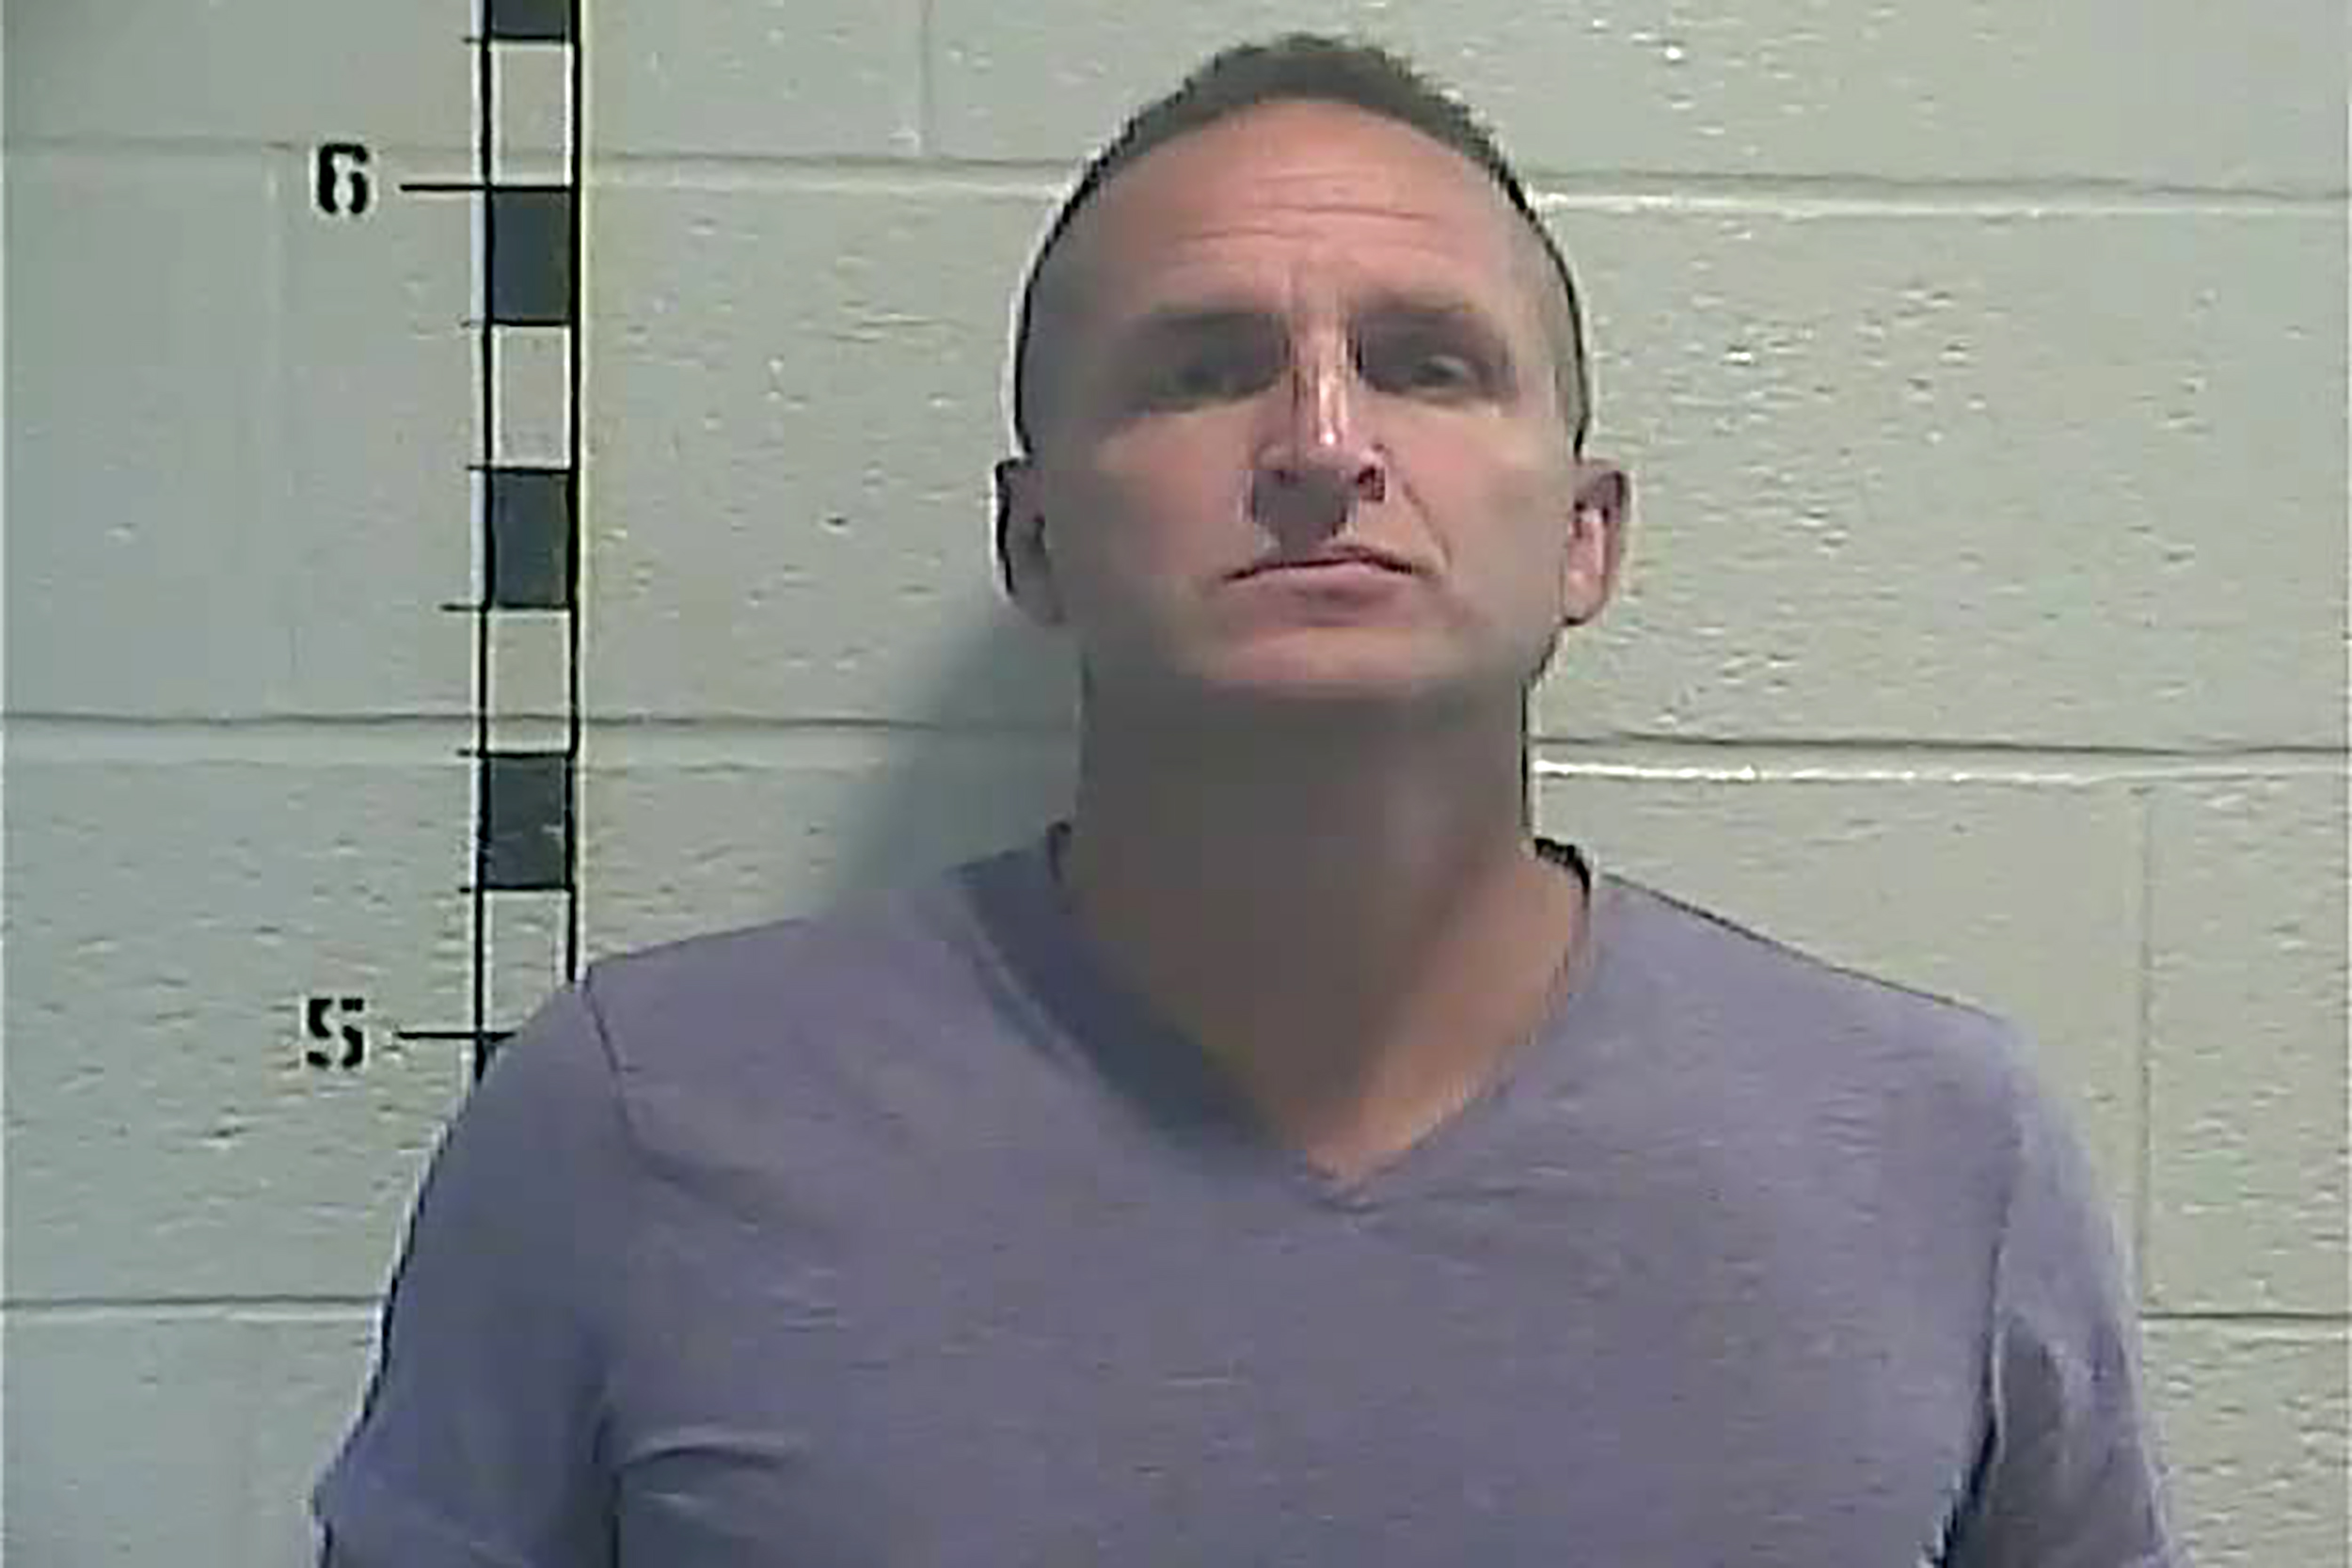 Former Louisville Metro Police Det. Brett Hankison was released from jail Wednesday after surrendering to authorities and posting bond, his attorney Stew Matthews told CNN.